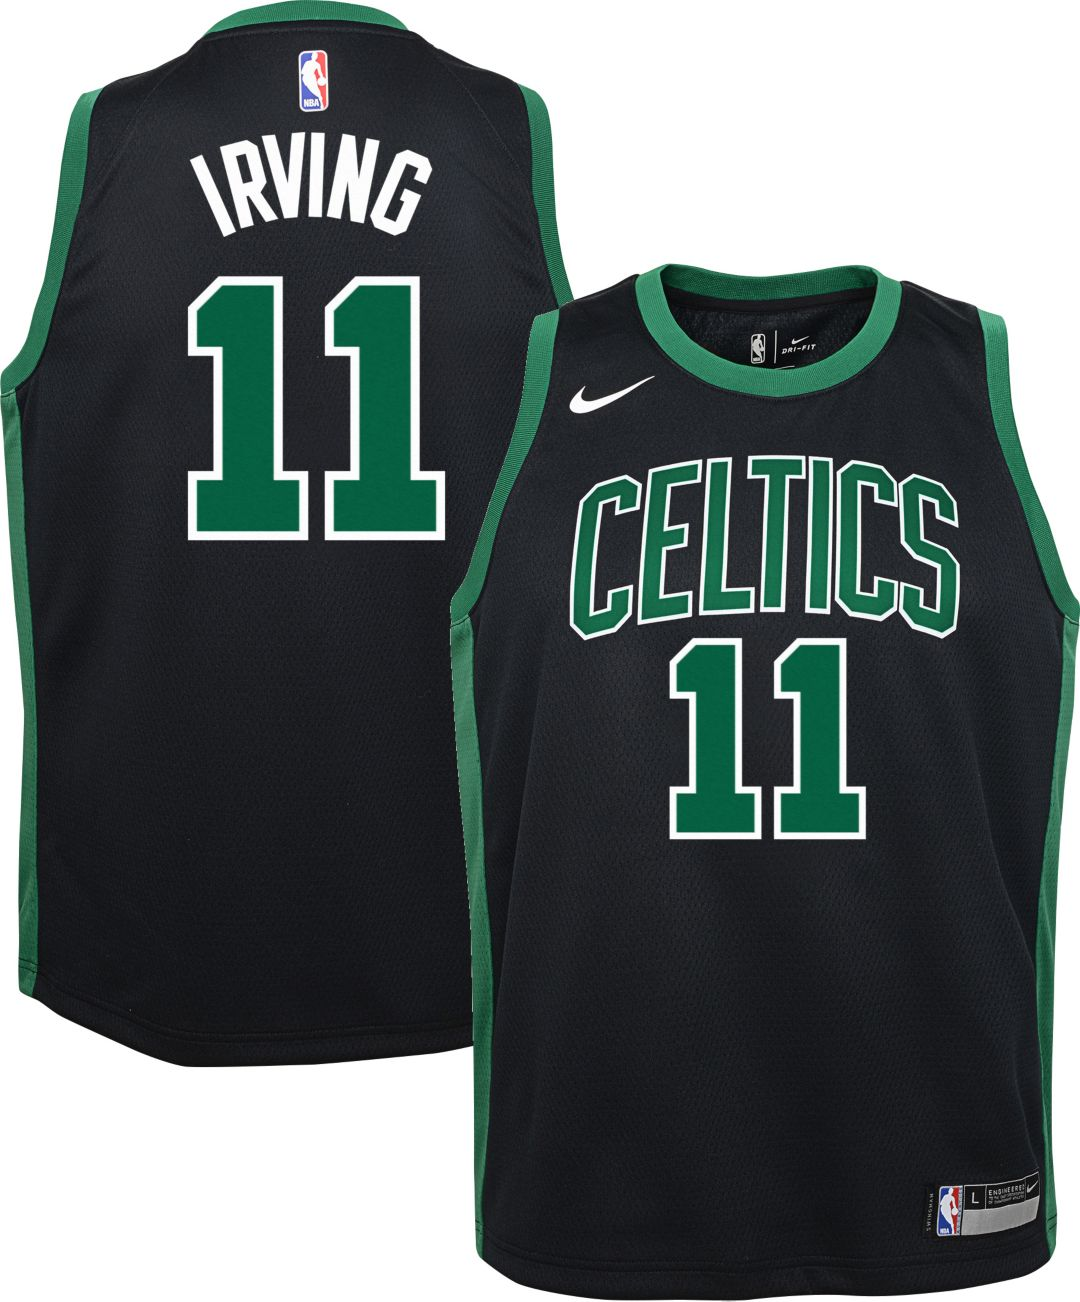 145c8405b4f Nike Youth Boston Celtics Kyrie Irving #11 Black Dri-FIT Swingman Jersey 1